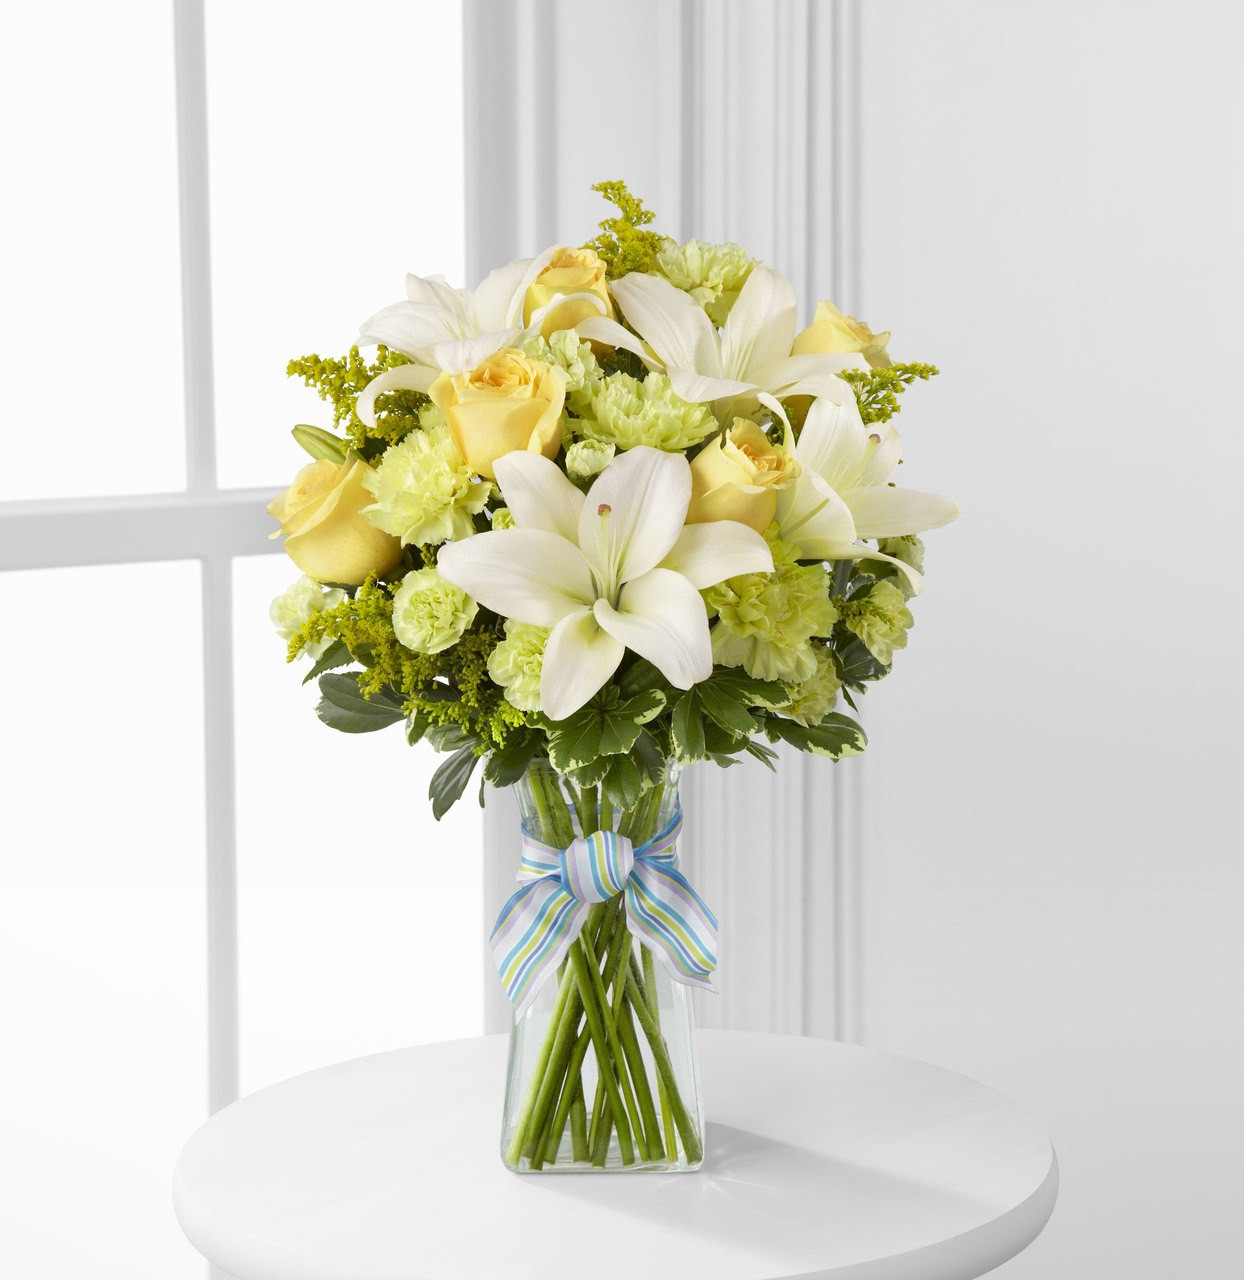 BoyOhBoy Bouquet - Kloeckner Preferred Flowers